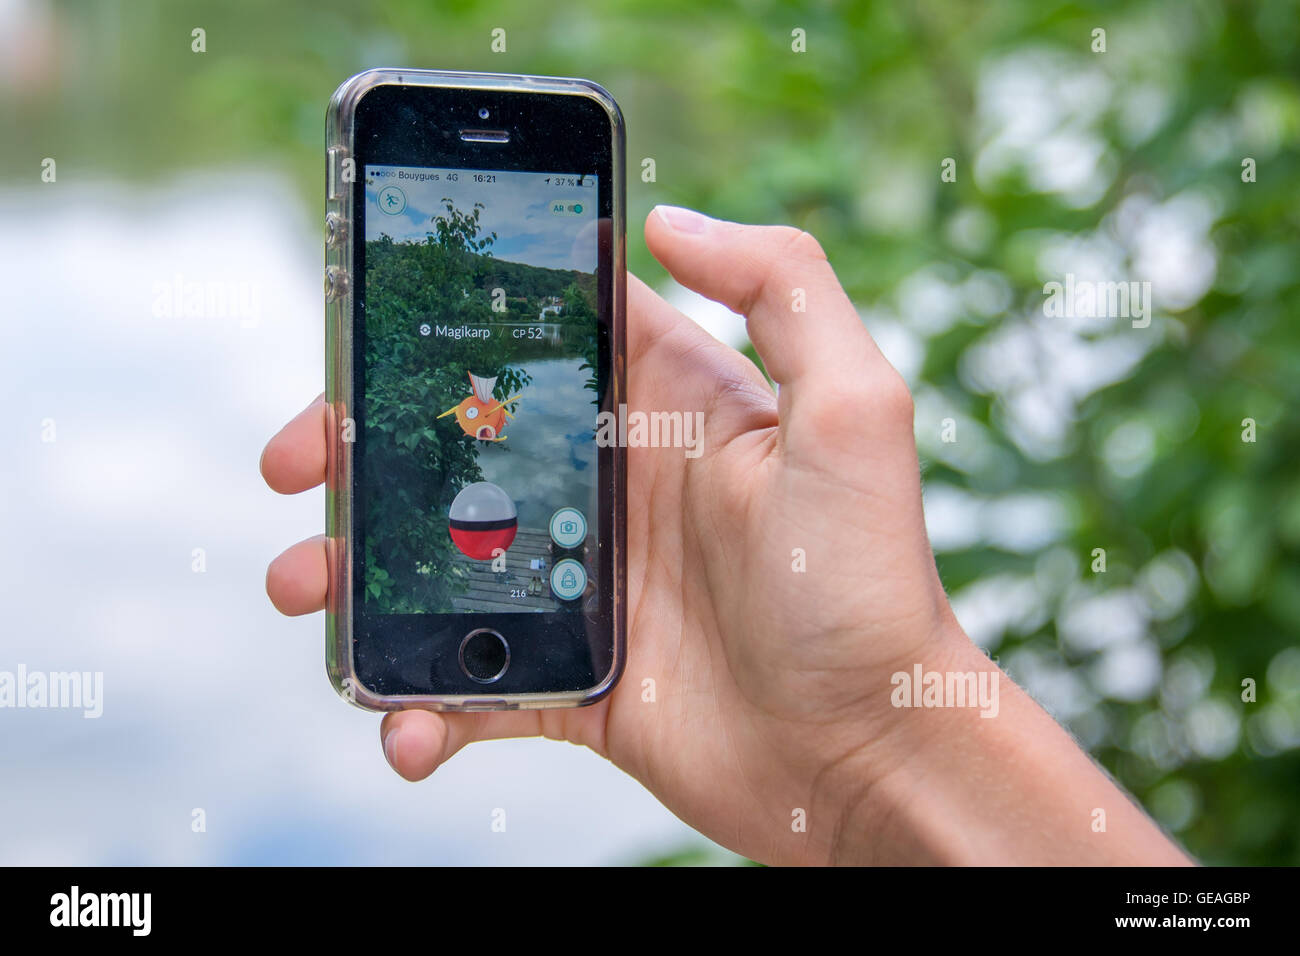 Meudon, France. 24th July, 2016. Apple iPhone5s with Pokemon Go application, hands of a teenager playing in the - Stock Image